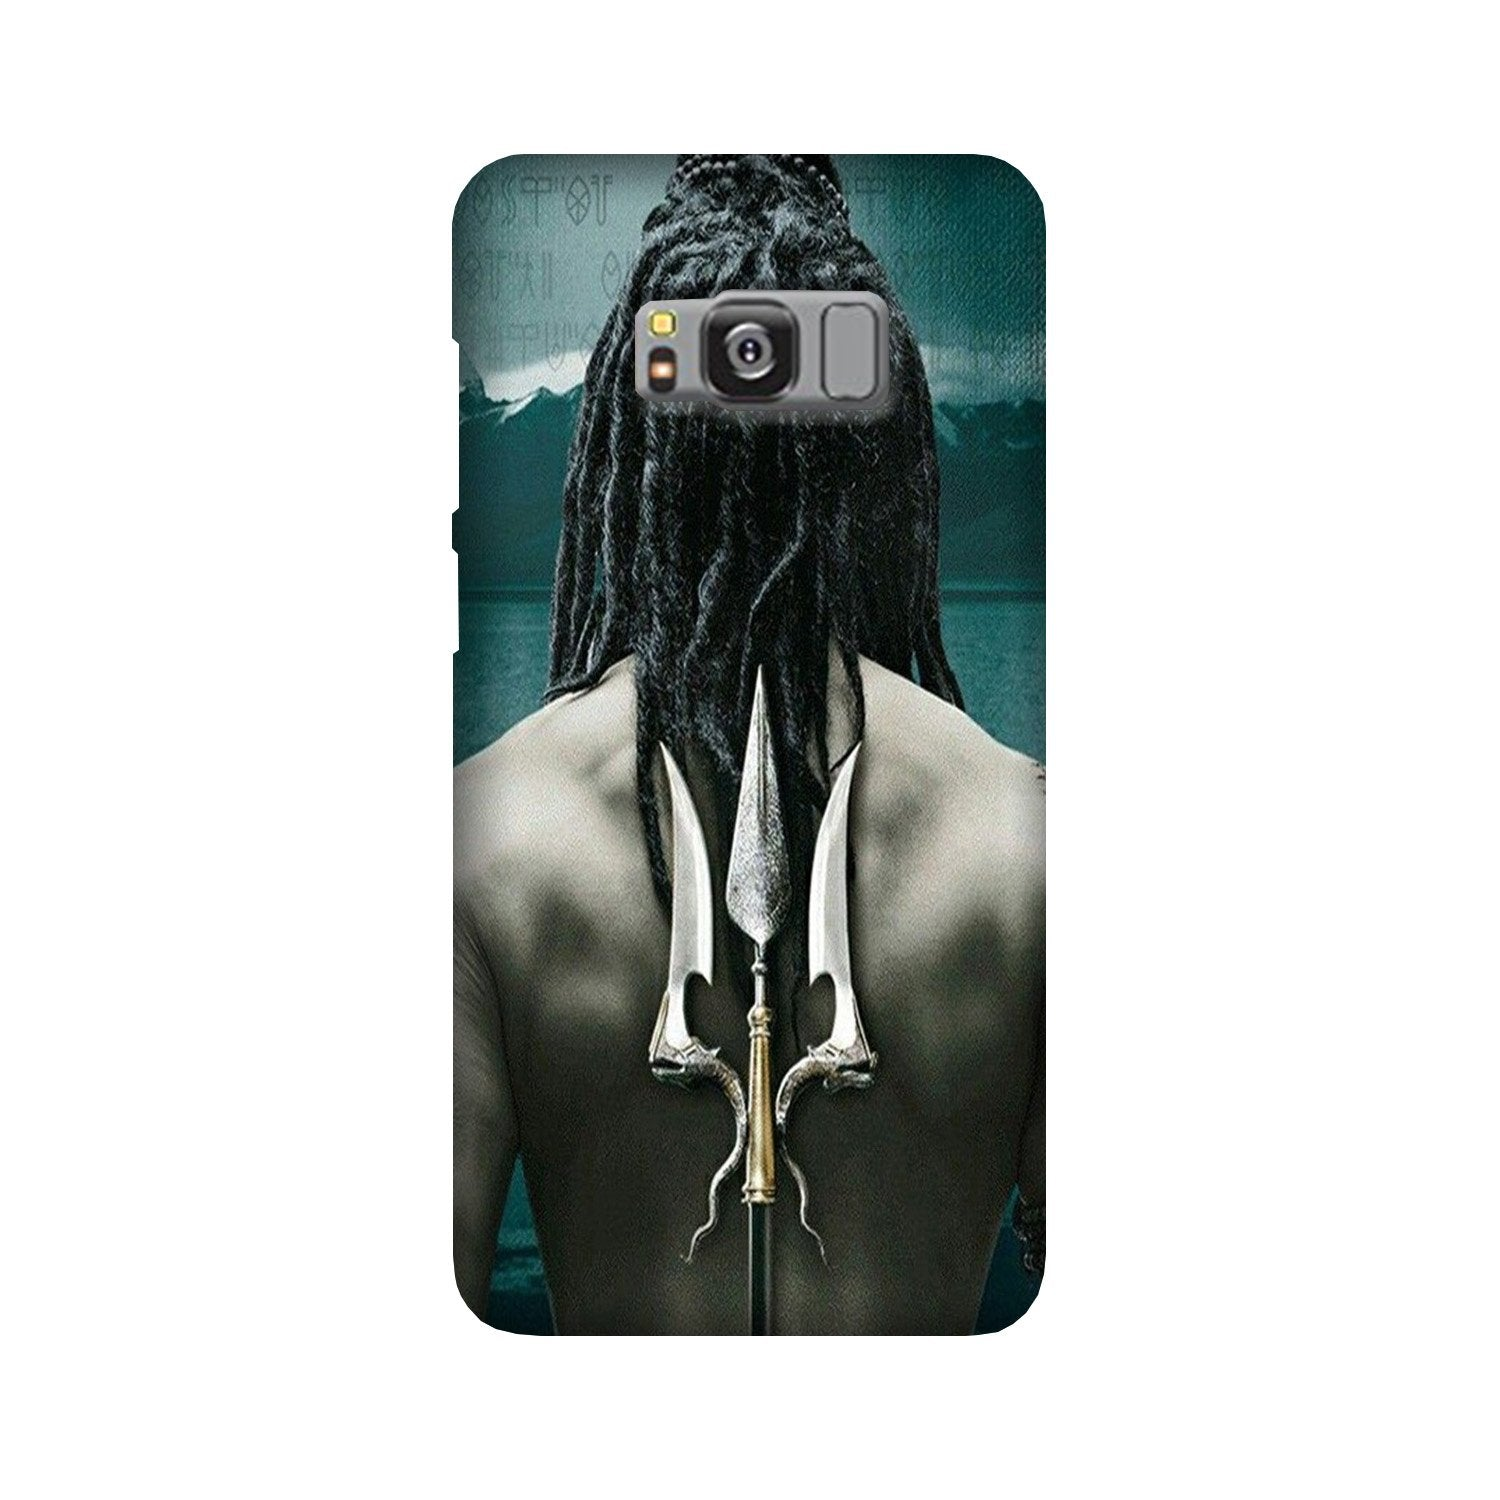 Mahakal Case for Galaxy S8